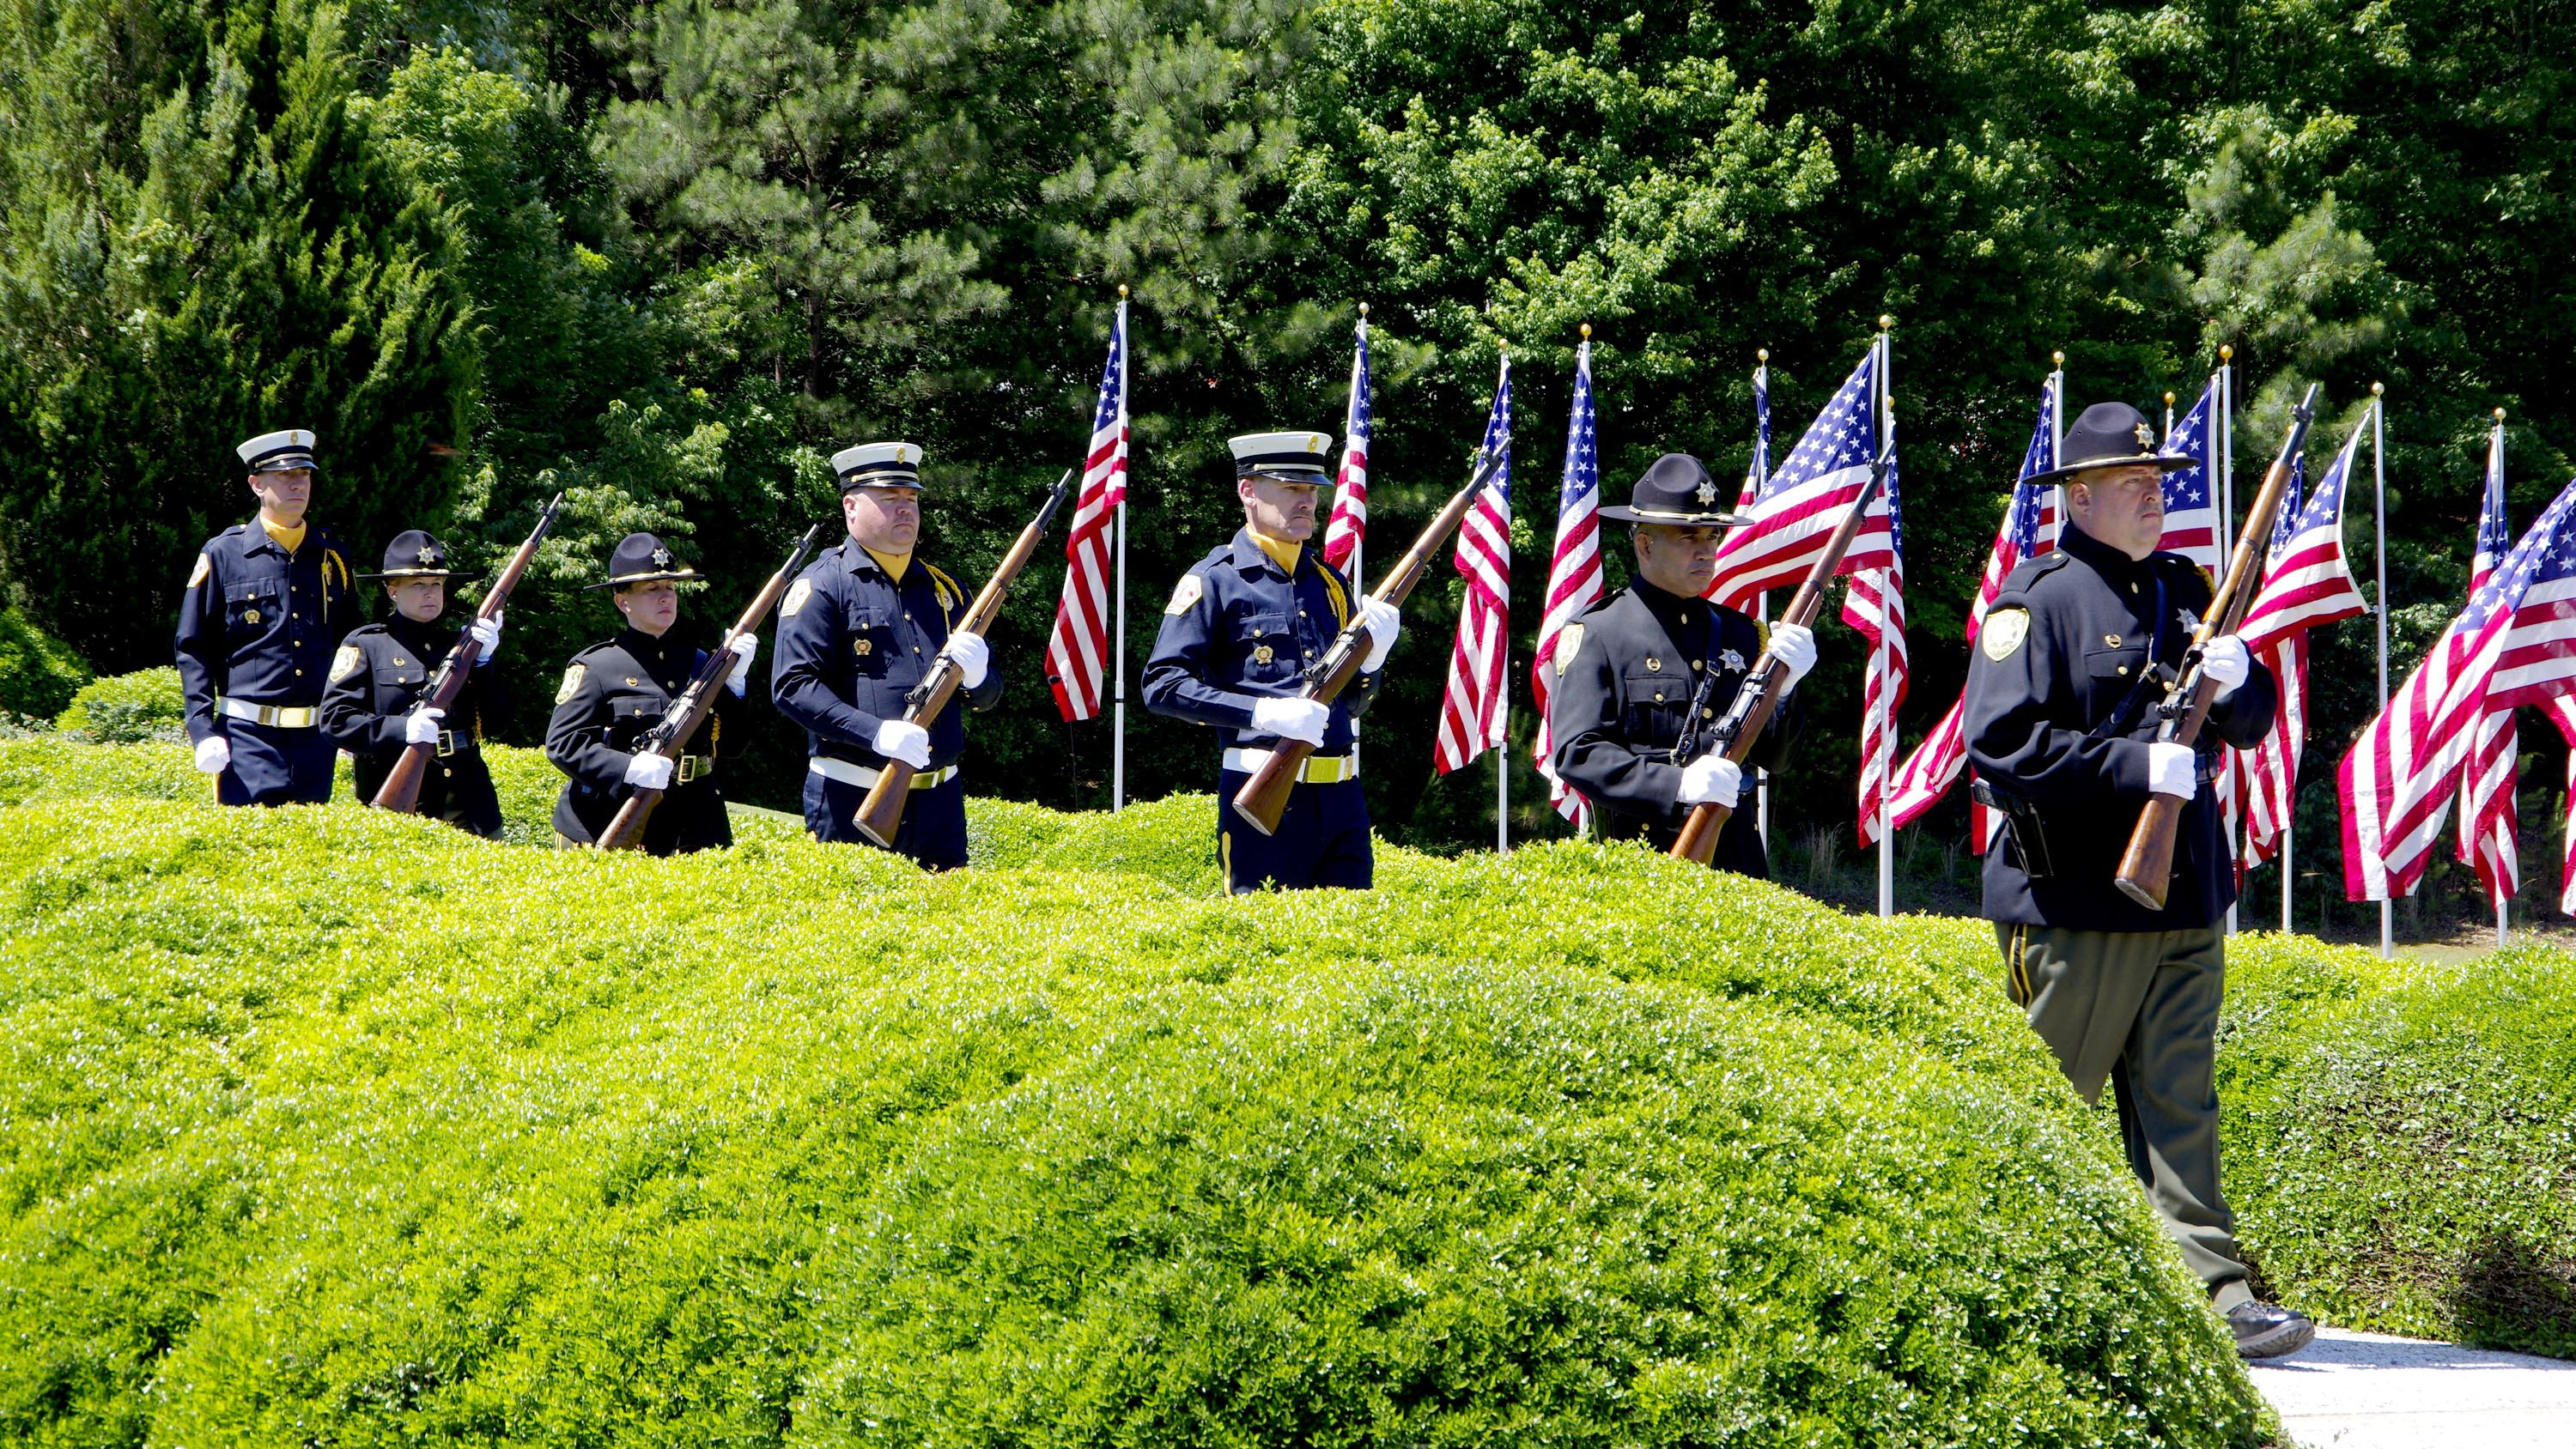 The honor guard rifle squad prepares for the salute